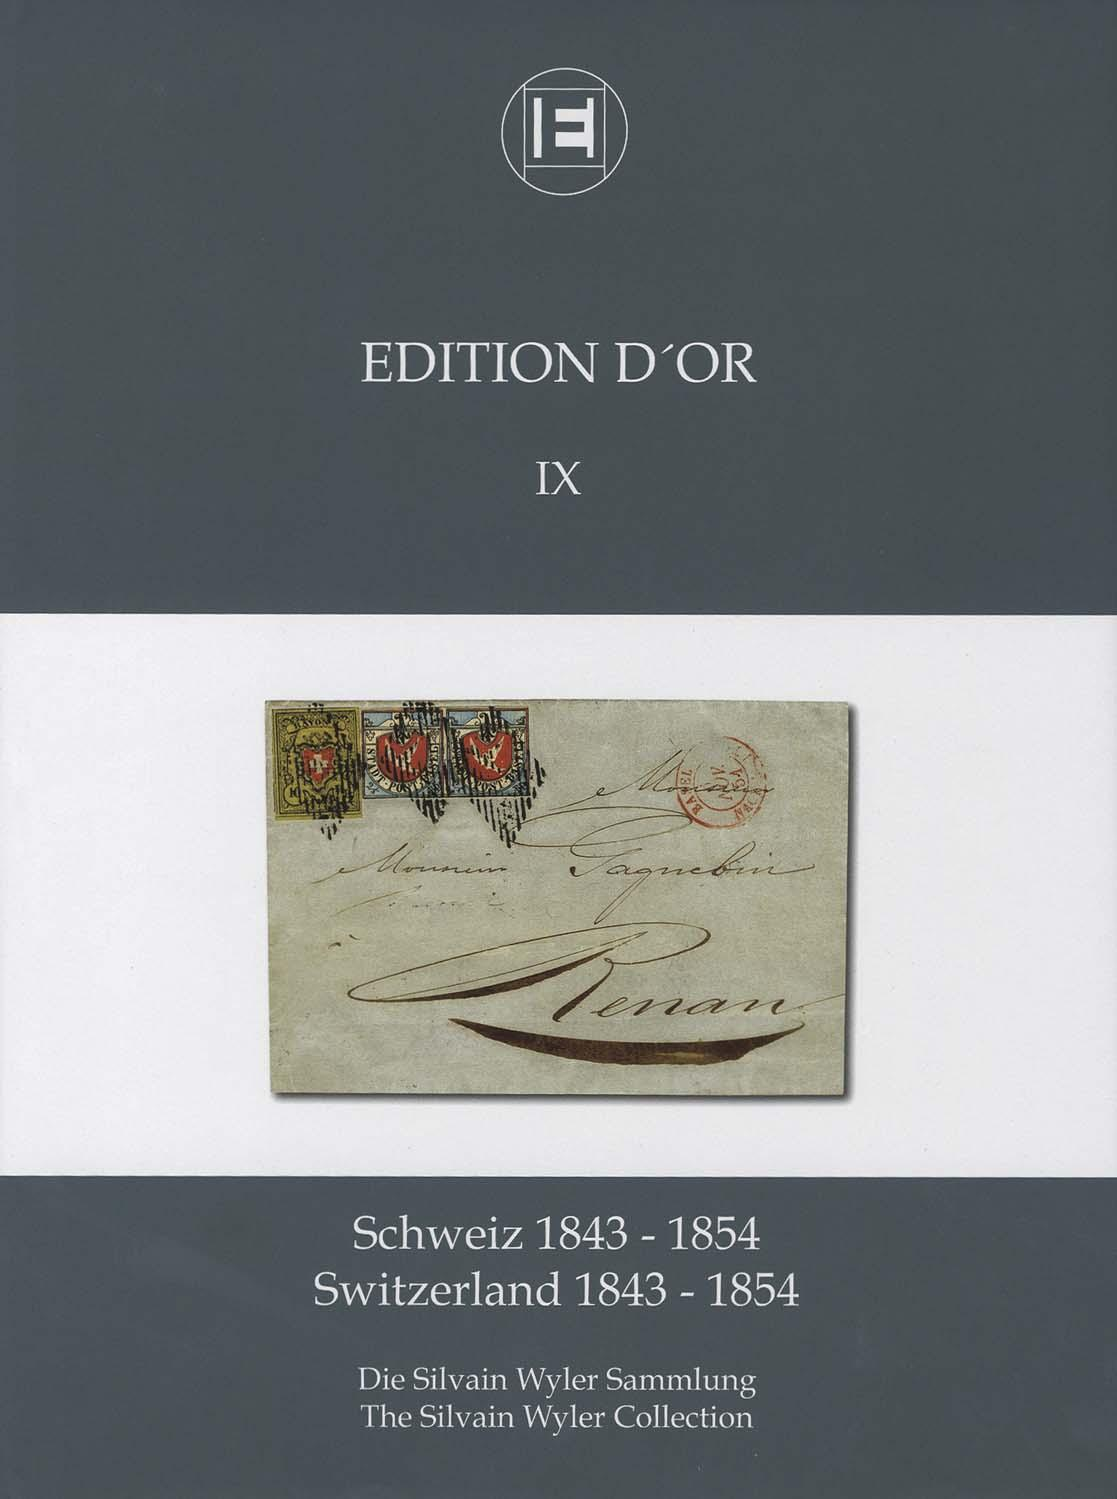 Vol. 9: Switzerland 1843-1854 • The Silvain Wyler Collection